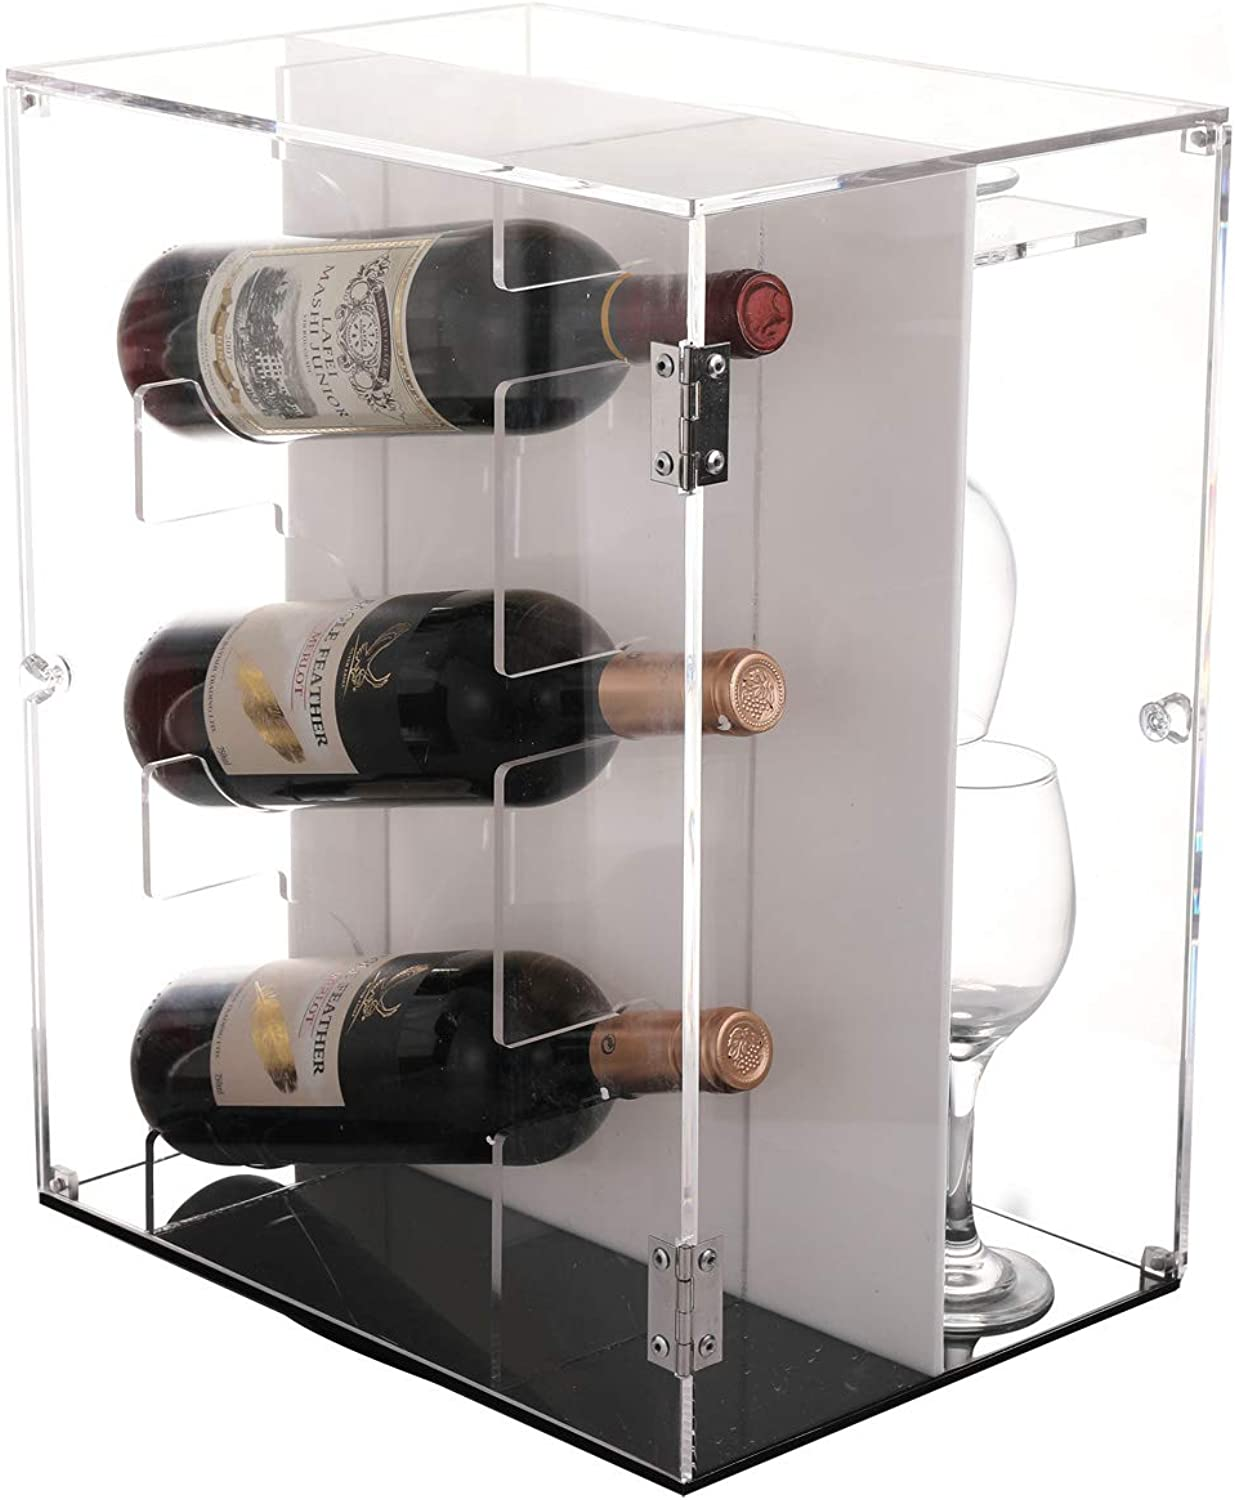 Sooyee Deluxe Acrylic Wine Cabinets,360 Degree redating Wine Rack Countertop,Freestanding Holder 3-7 Bottles Red and White Wine and 7 Glass Rack,Dustproof Wine Display Box,Clear